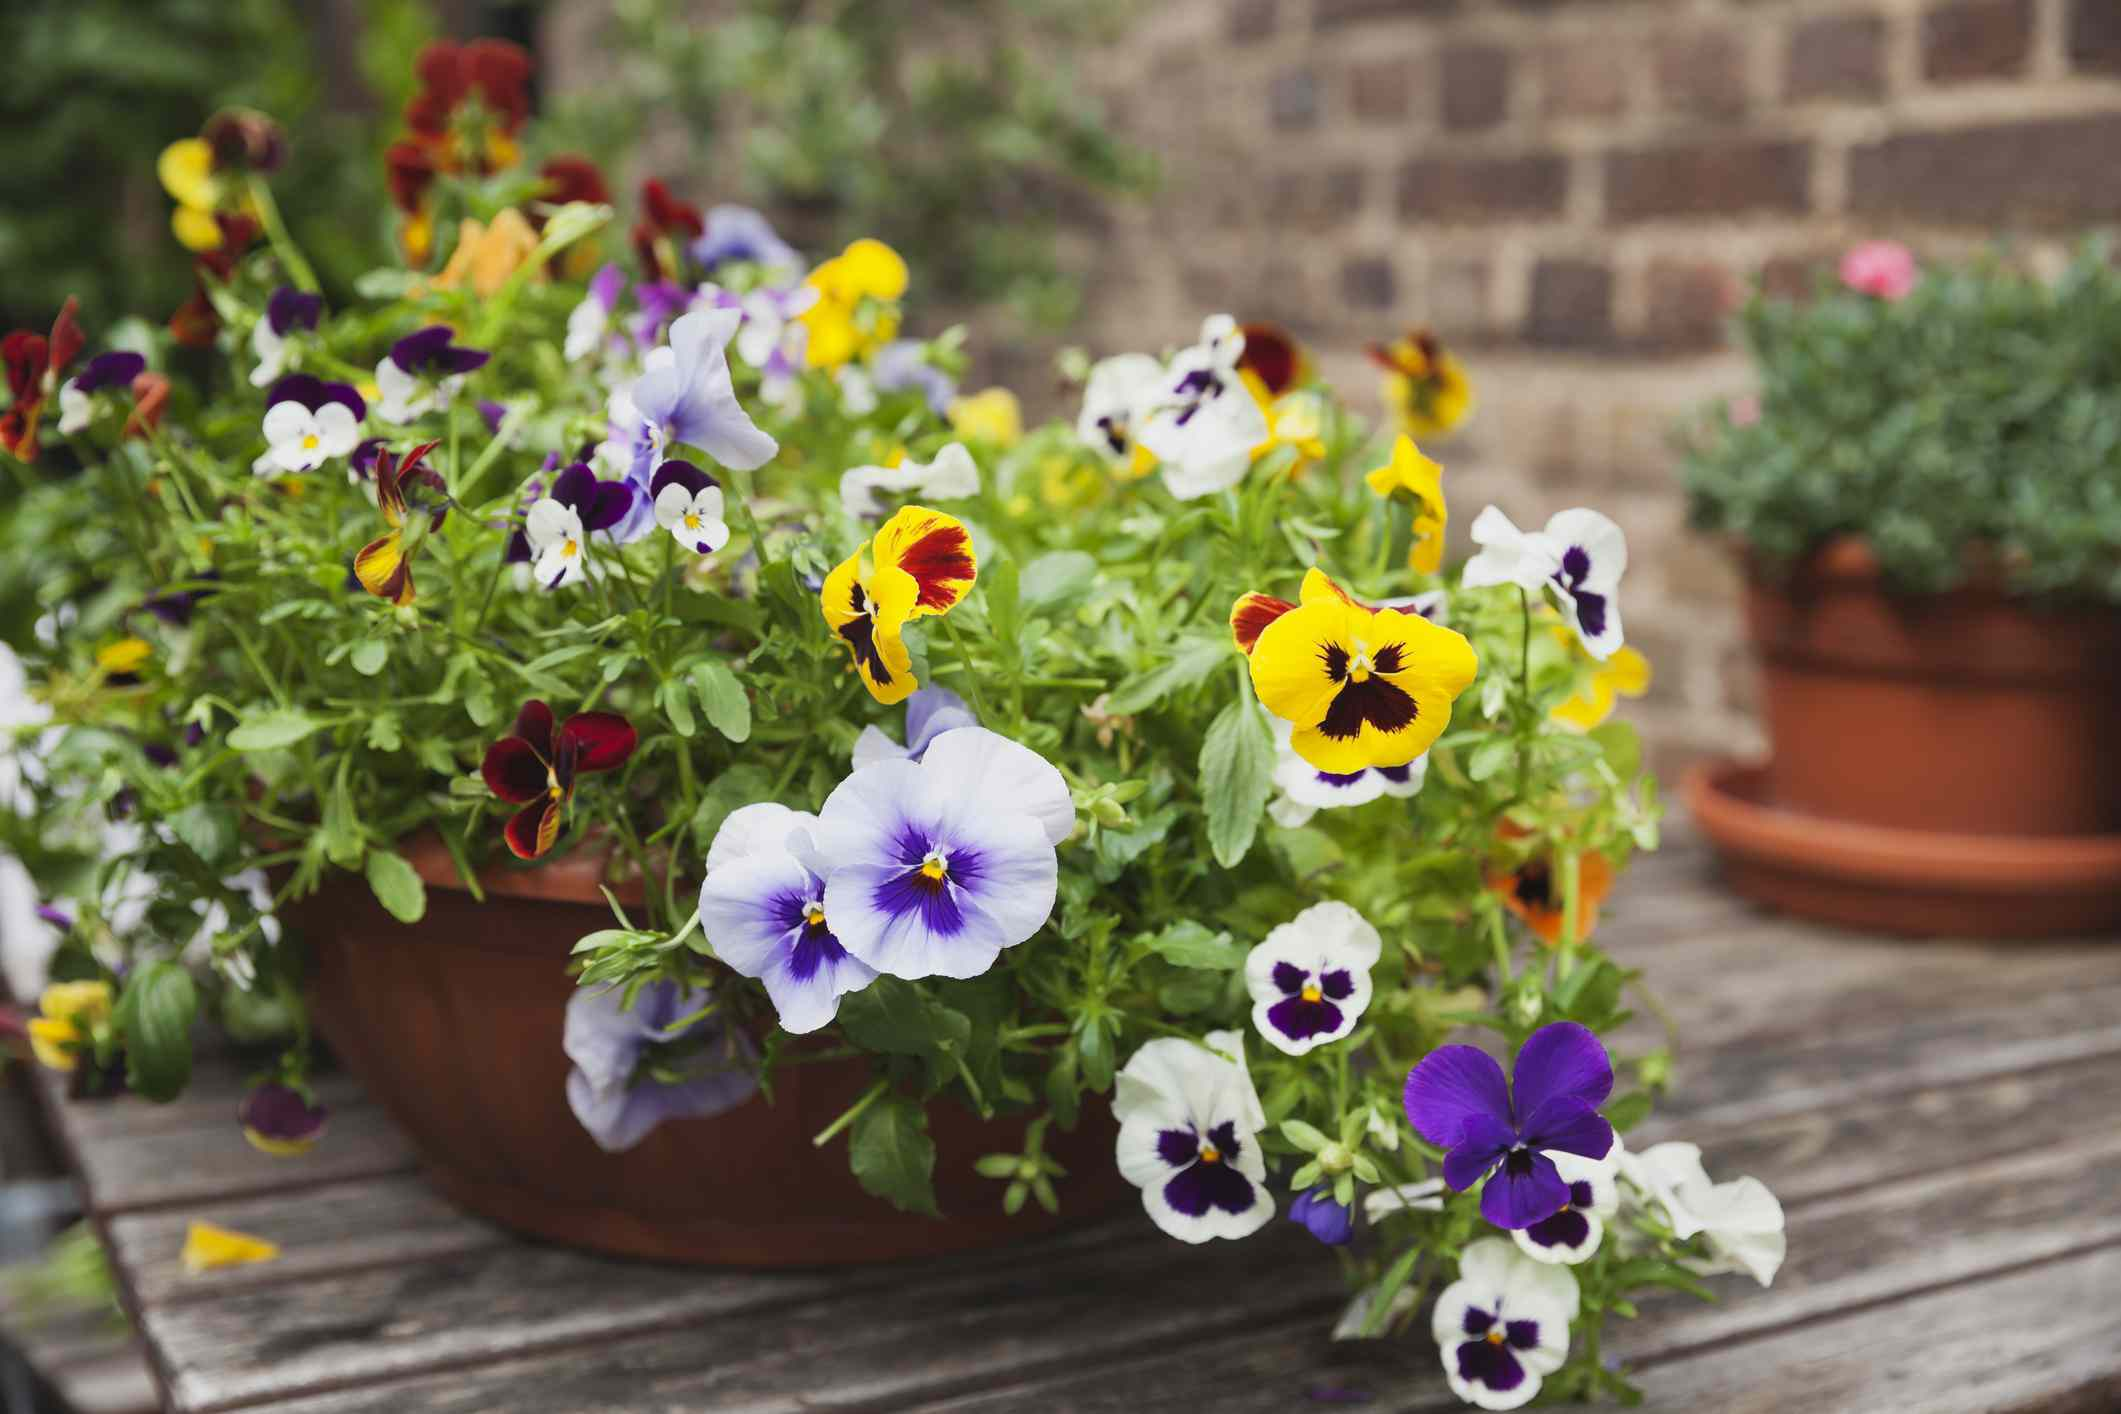 Pansies in a pot.